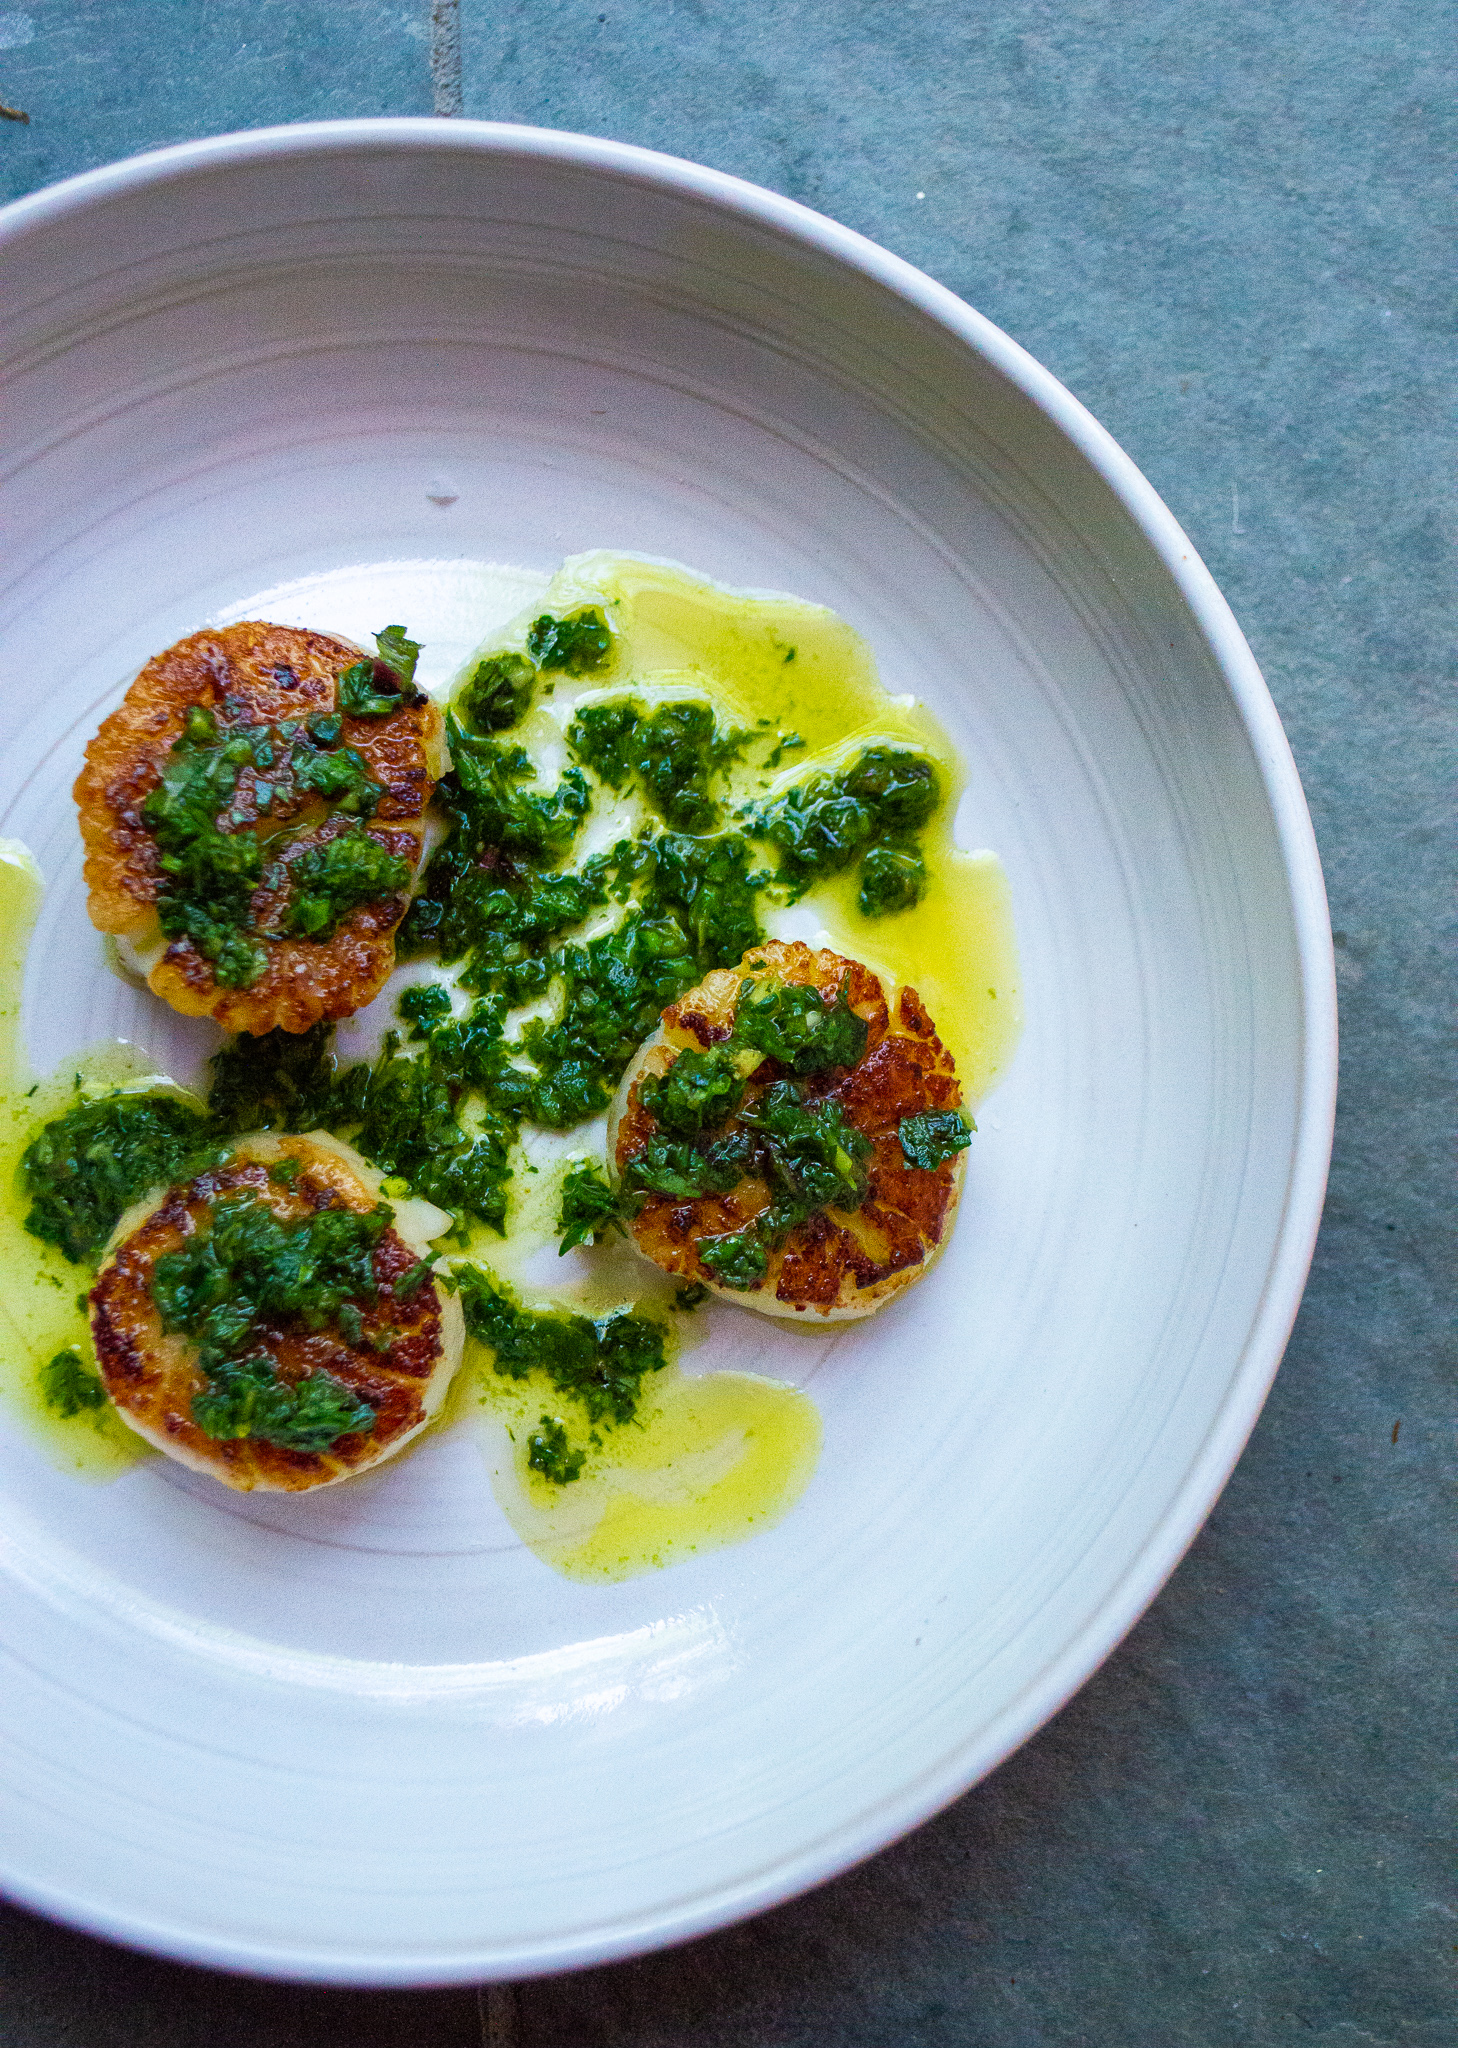 scallops with herby green sauce